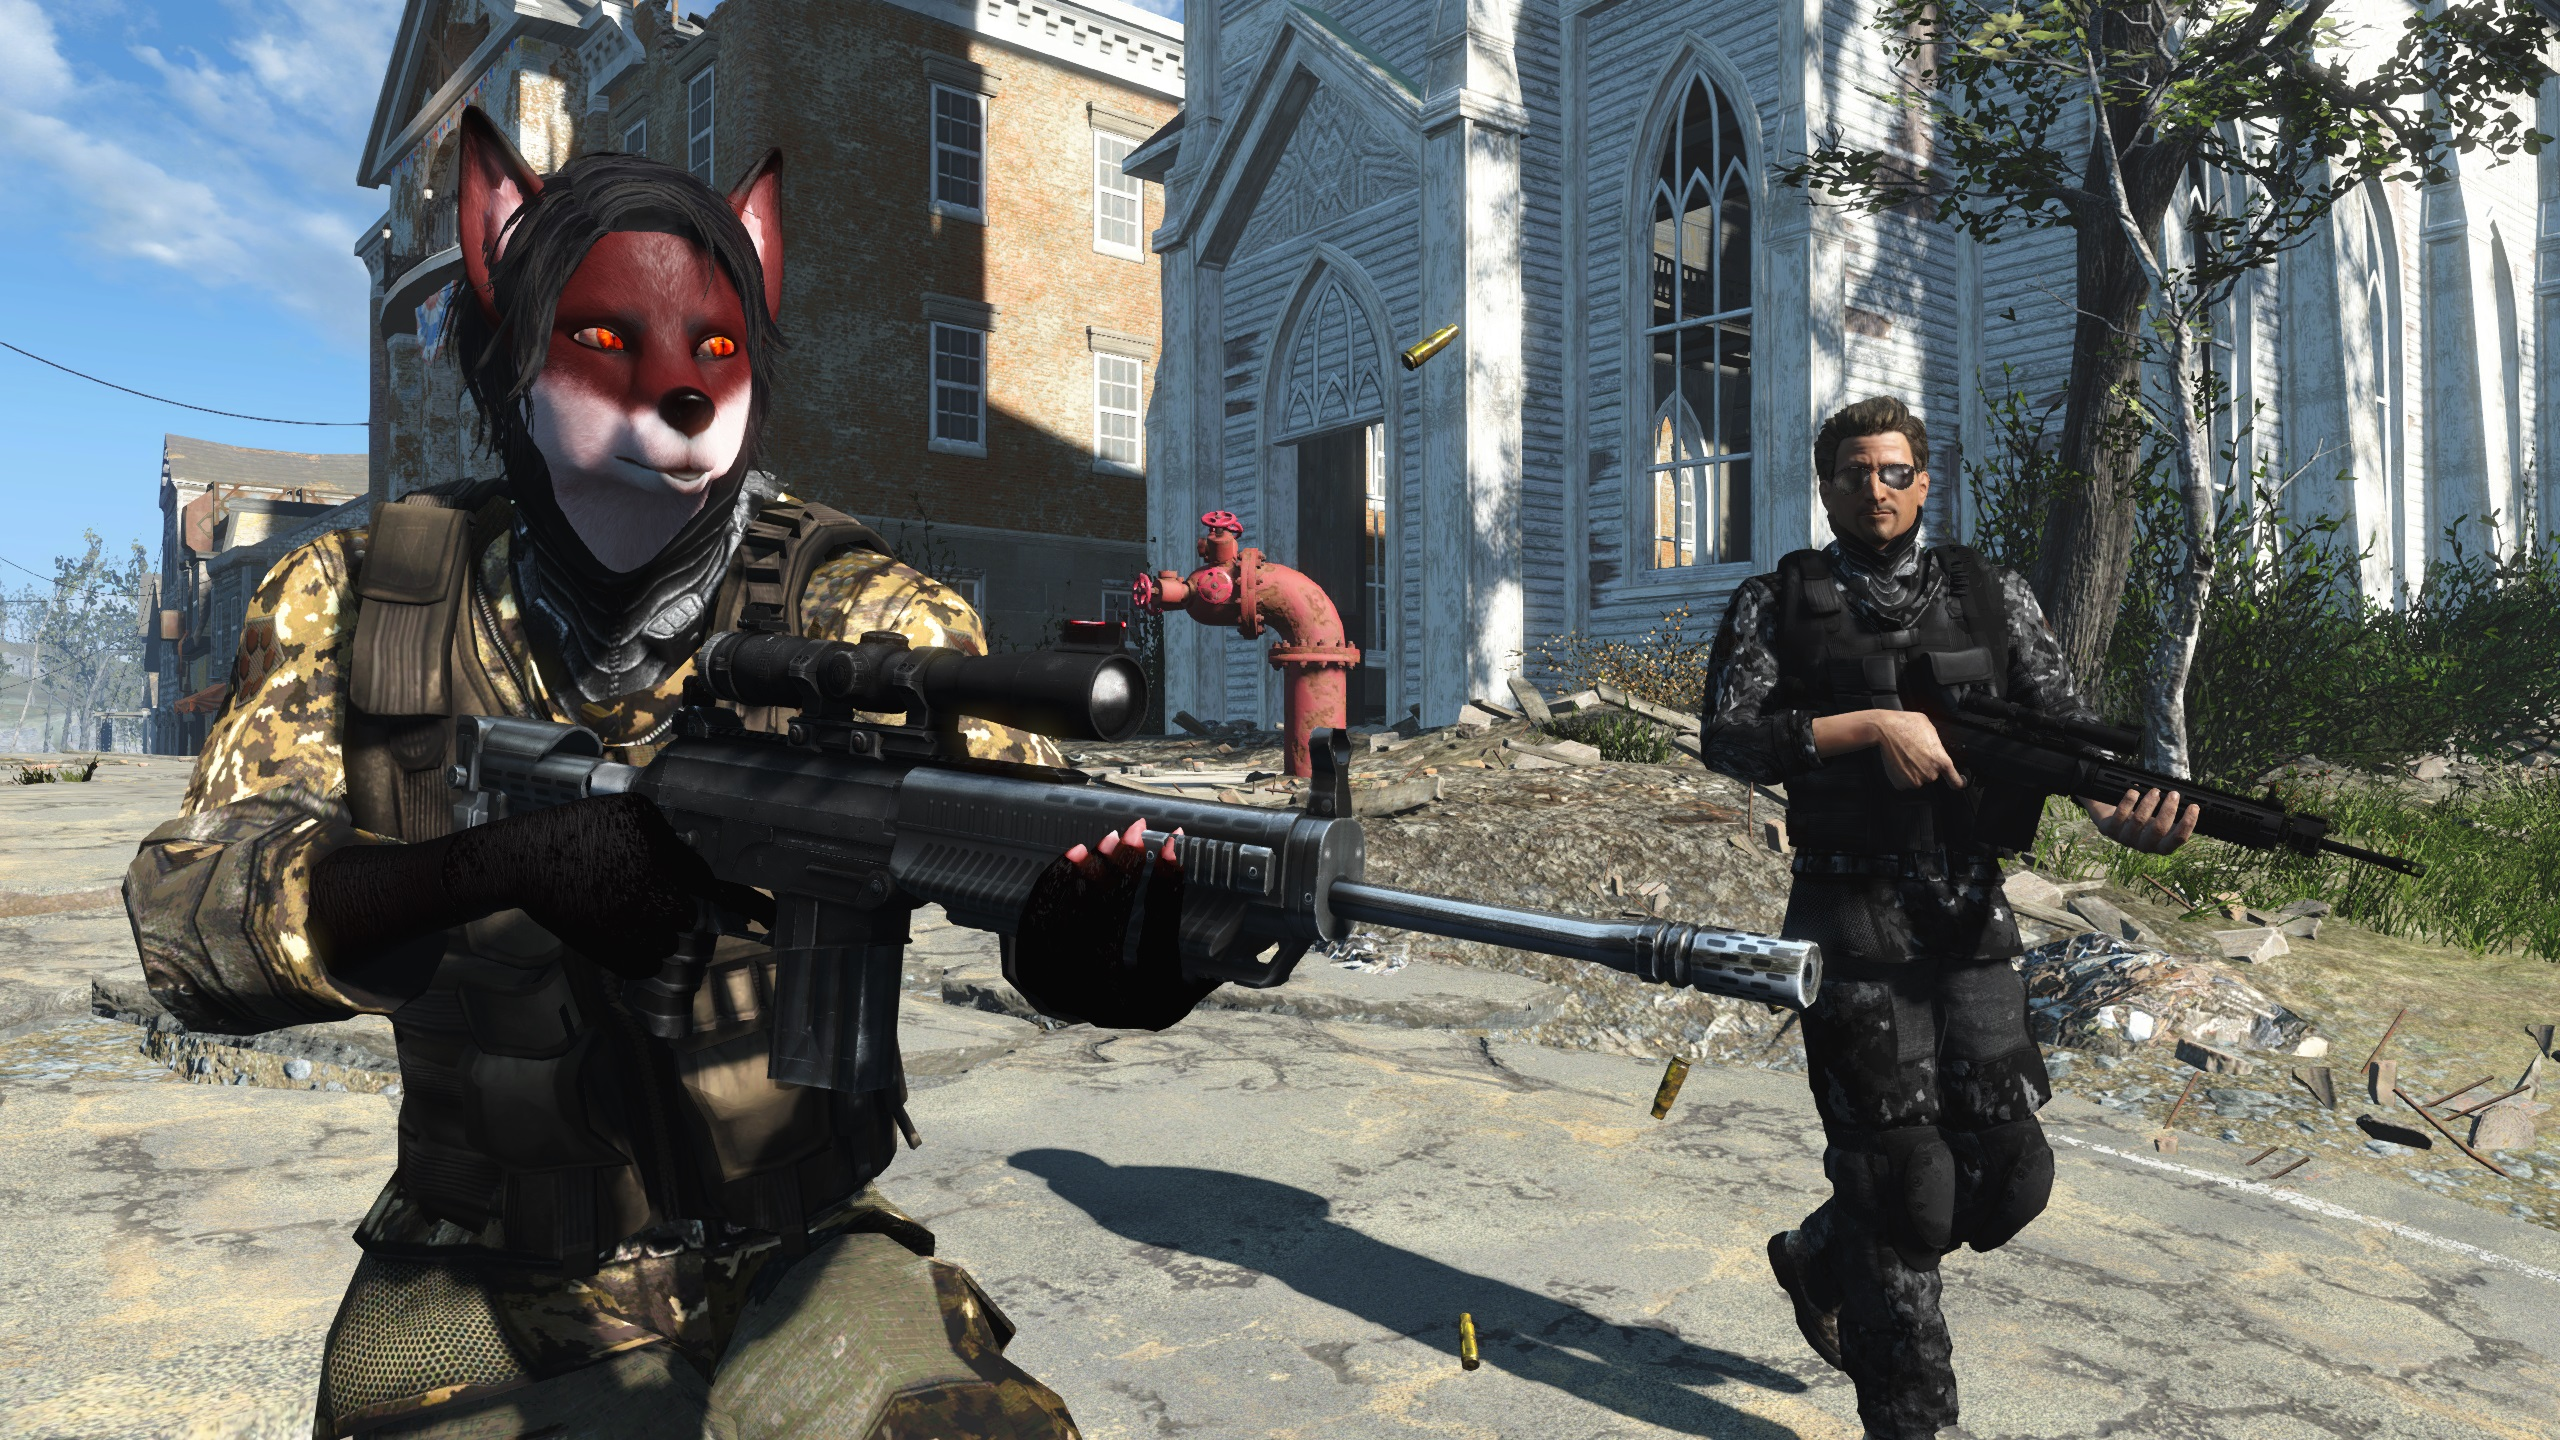 Arma 3 stuff in Fallout 4 at Fallout 4 Nexus - Mods and community